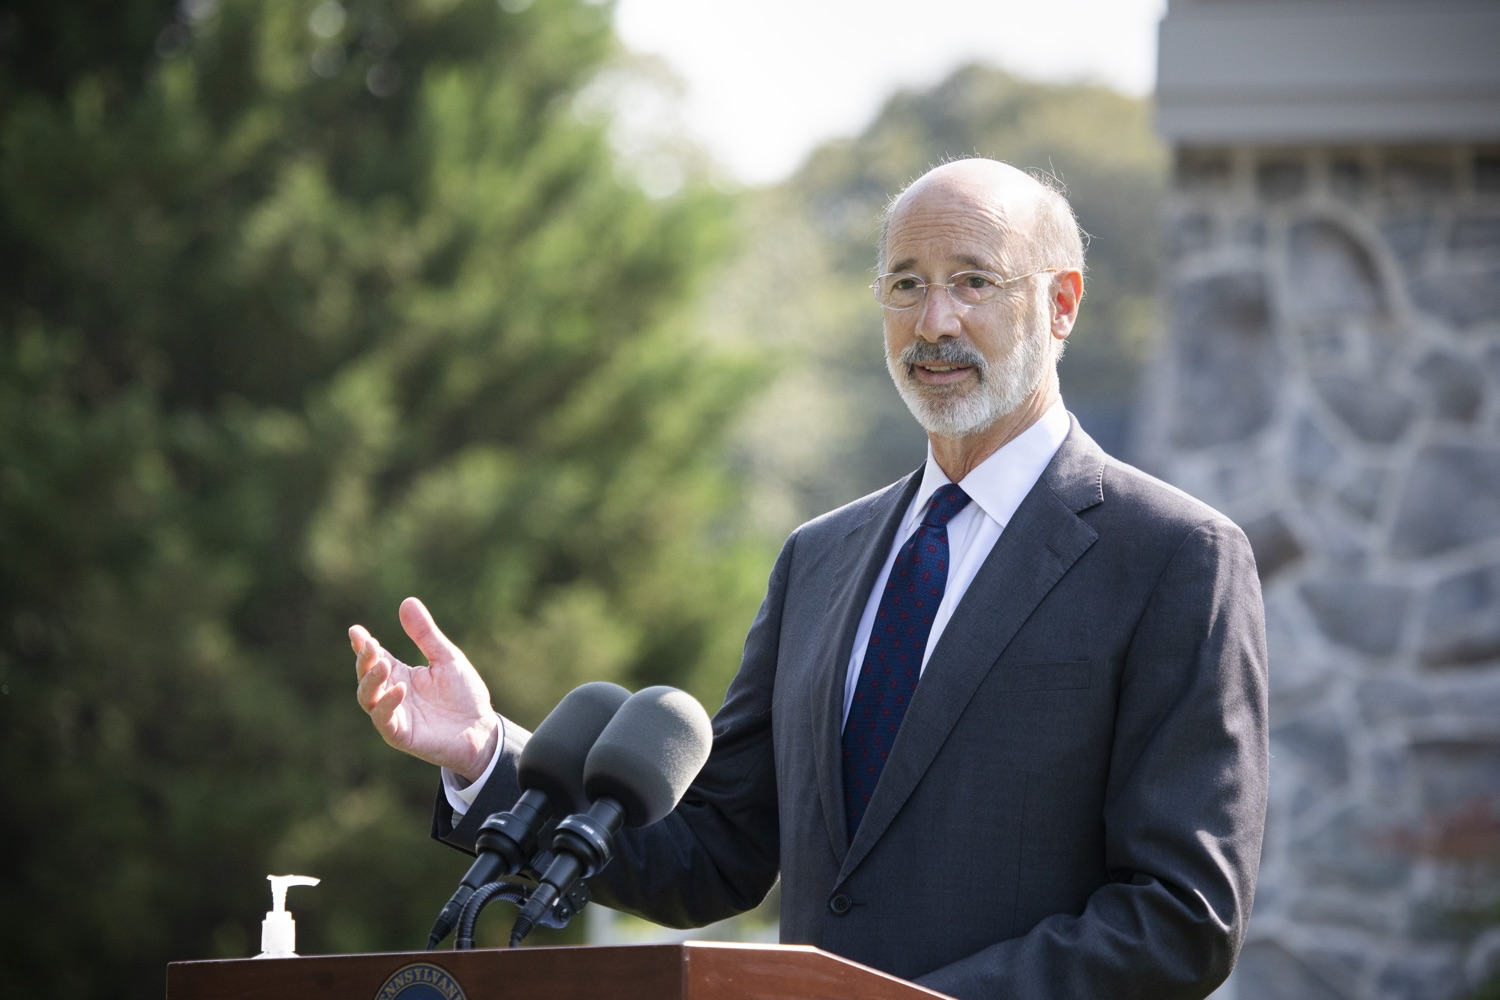 "<a href=""https://filesource.wostreaming.net/commonwealthofpa/photo/18248_gov_evictions_dz_025.jpg"" target=""_blank"">⇣ Download Photo<br></a>Pennsylvania Governor Tom Wolf speaking to the press. With rent and mortgage debt mounting for hundreds of thousands of Pennsylvanians, Governor Tom Wolf is calling on the General Assembly to fix a state relief program to prevent many families from becoming homeless and enact a moratorium on evictions and foreclosures until the end of the year. The governor was joined today by legislators and housing advocates at a press conference in Lancaster County. Harrisburg, PA  Sept. 8, 2020"